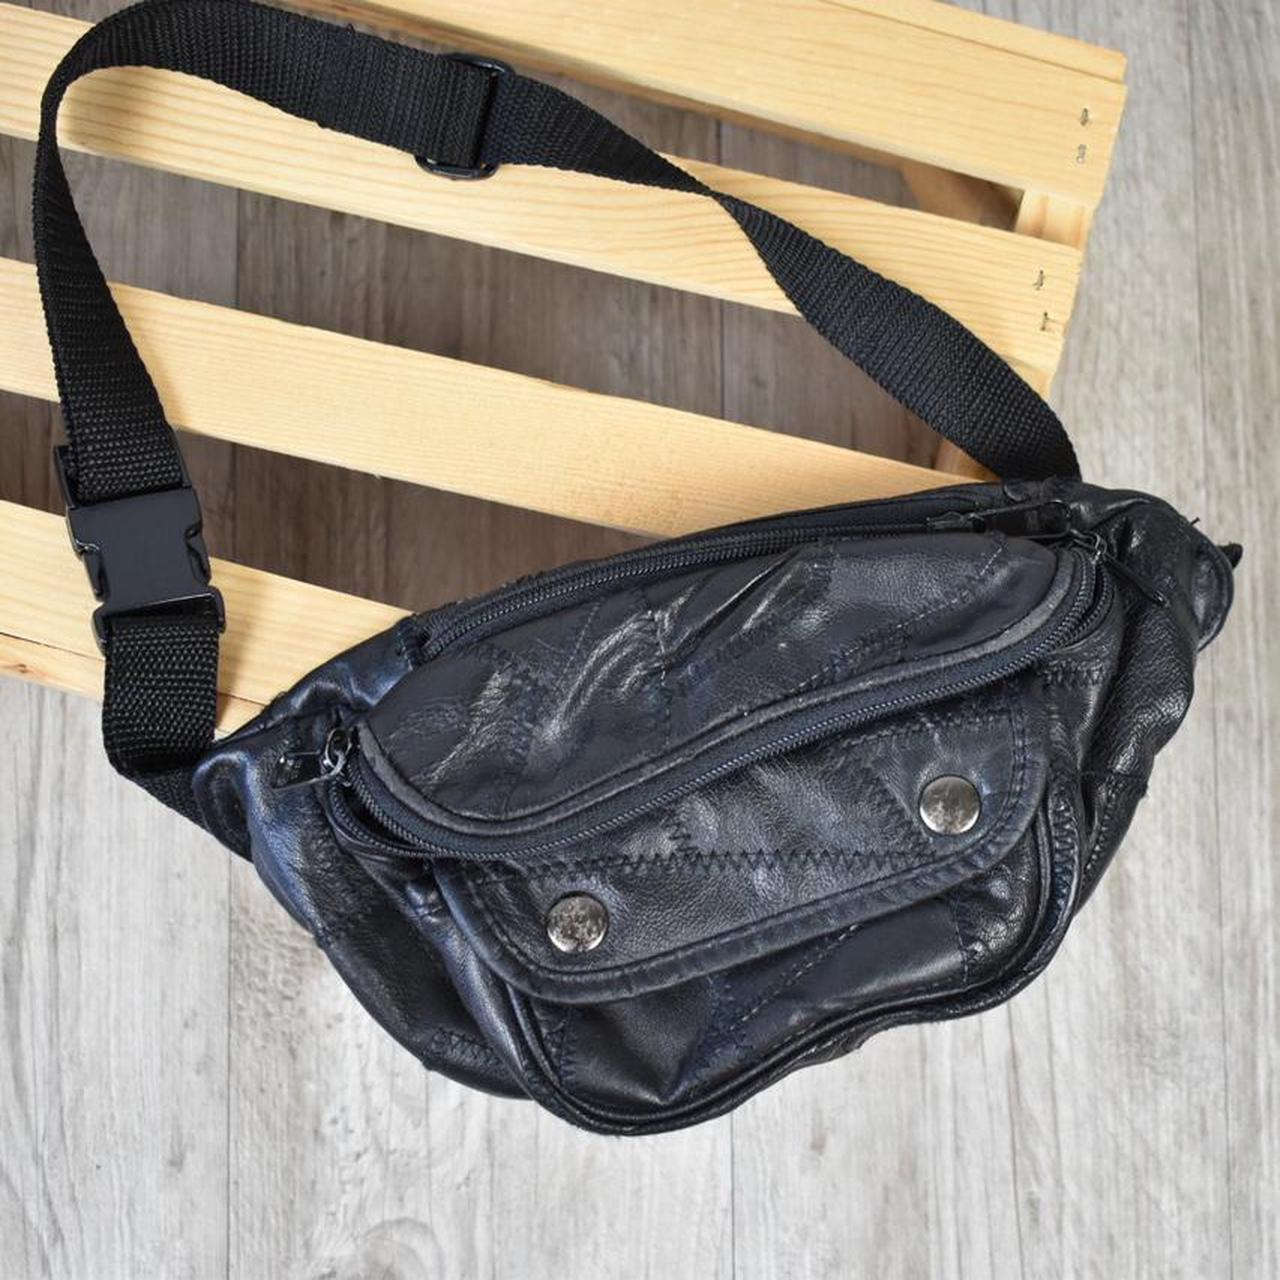 Product Image 1 - Vintage 80s 90s Leather Patchwork